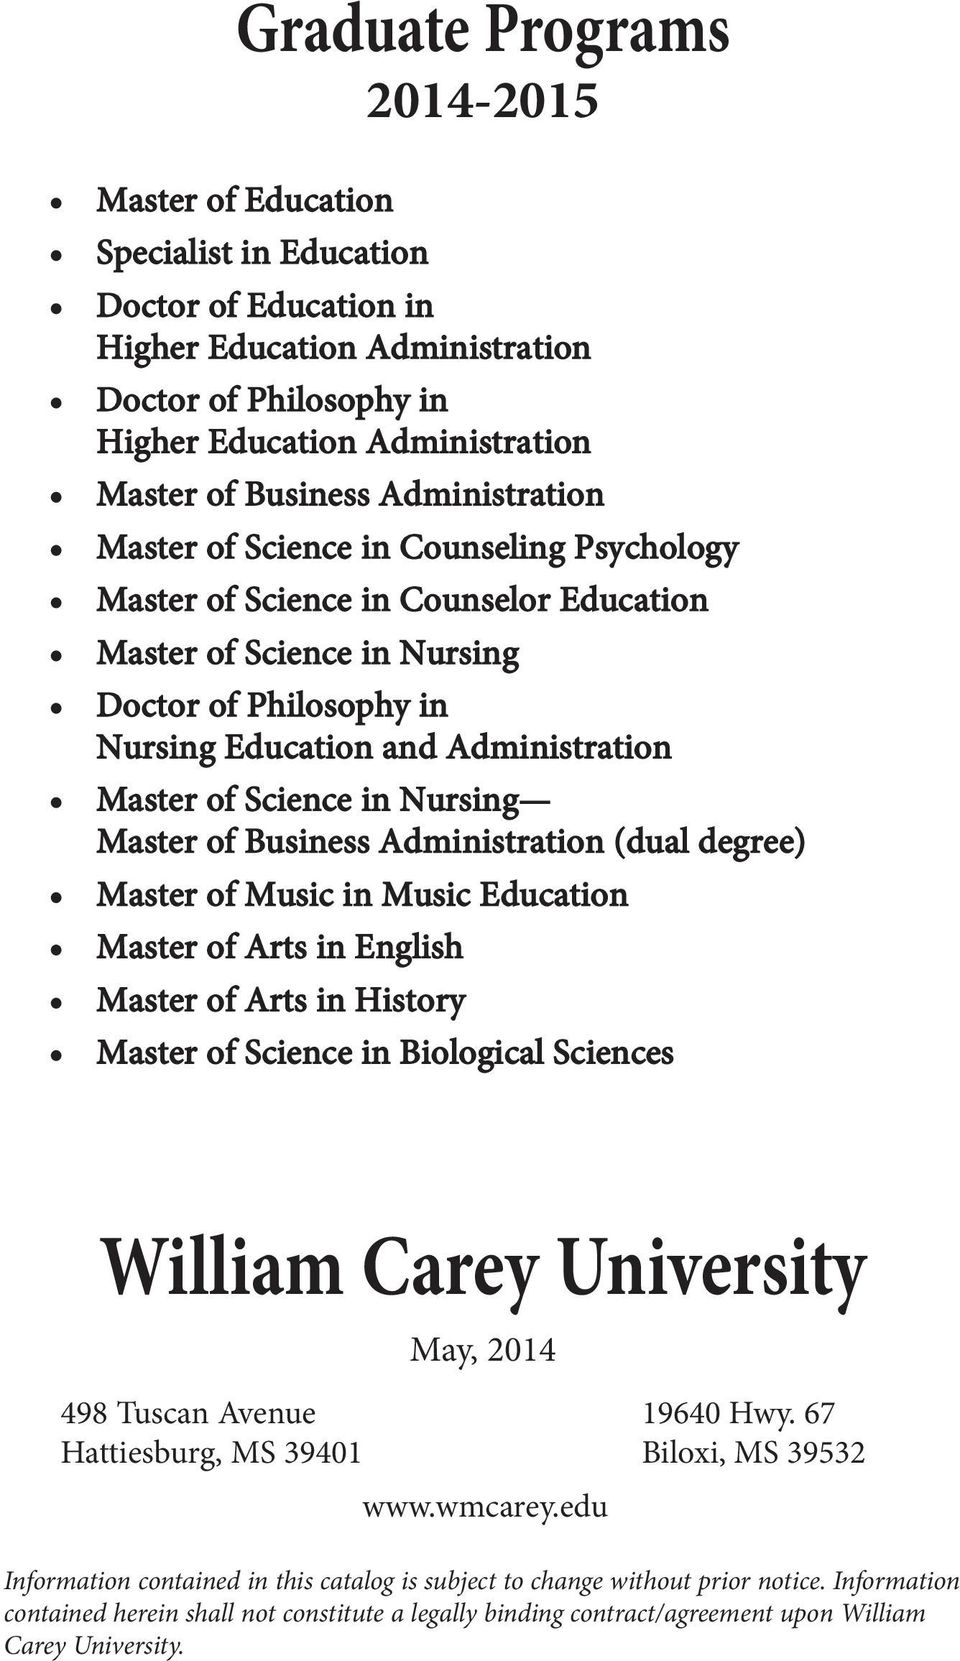 Master of Science in Nursing Master of Business Administration (dual degree) Master of Music in Music Education Master of Arts in English Master of Arts in History Master of Science in Biological